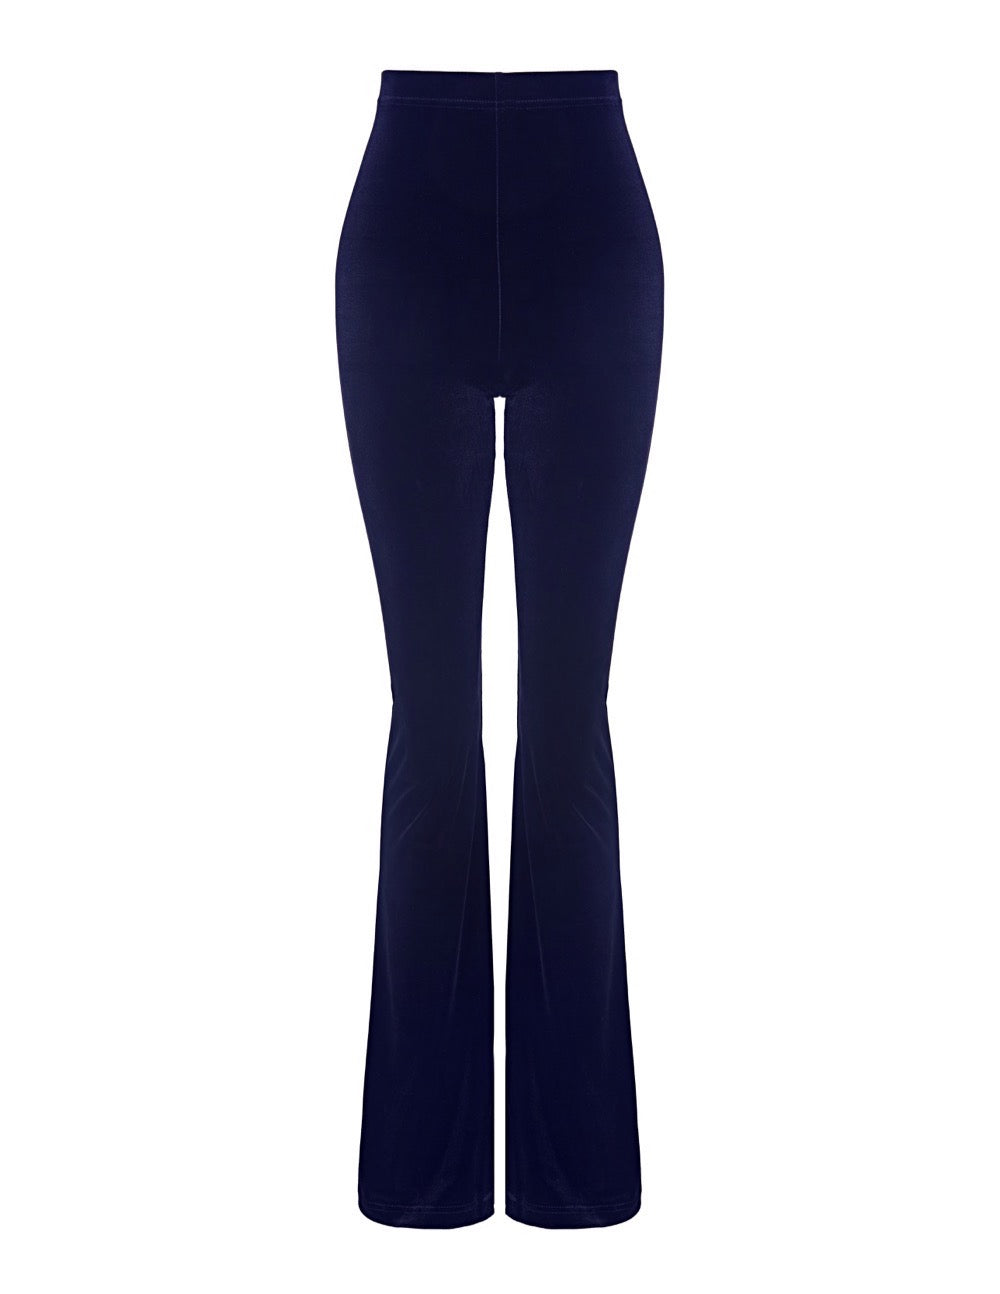 navy blue velvet flares sas womens clothing uk